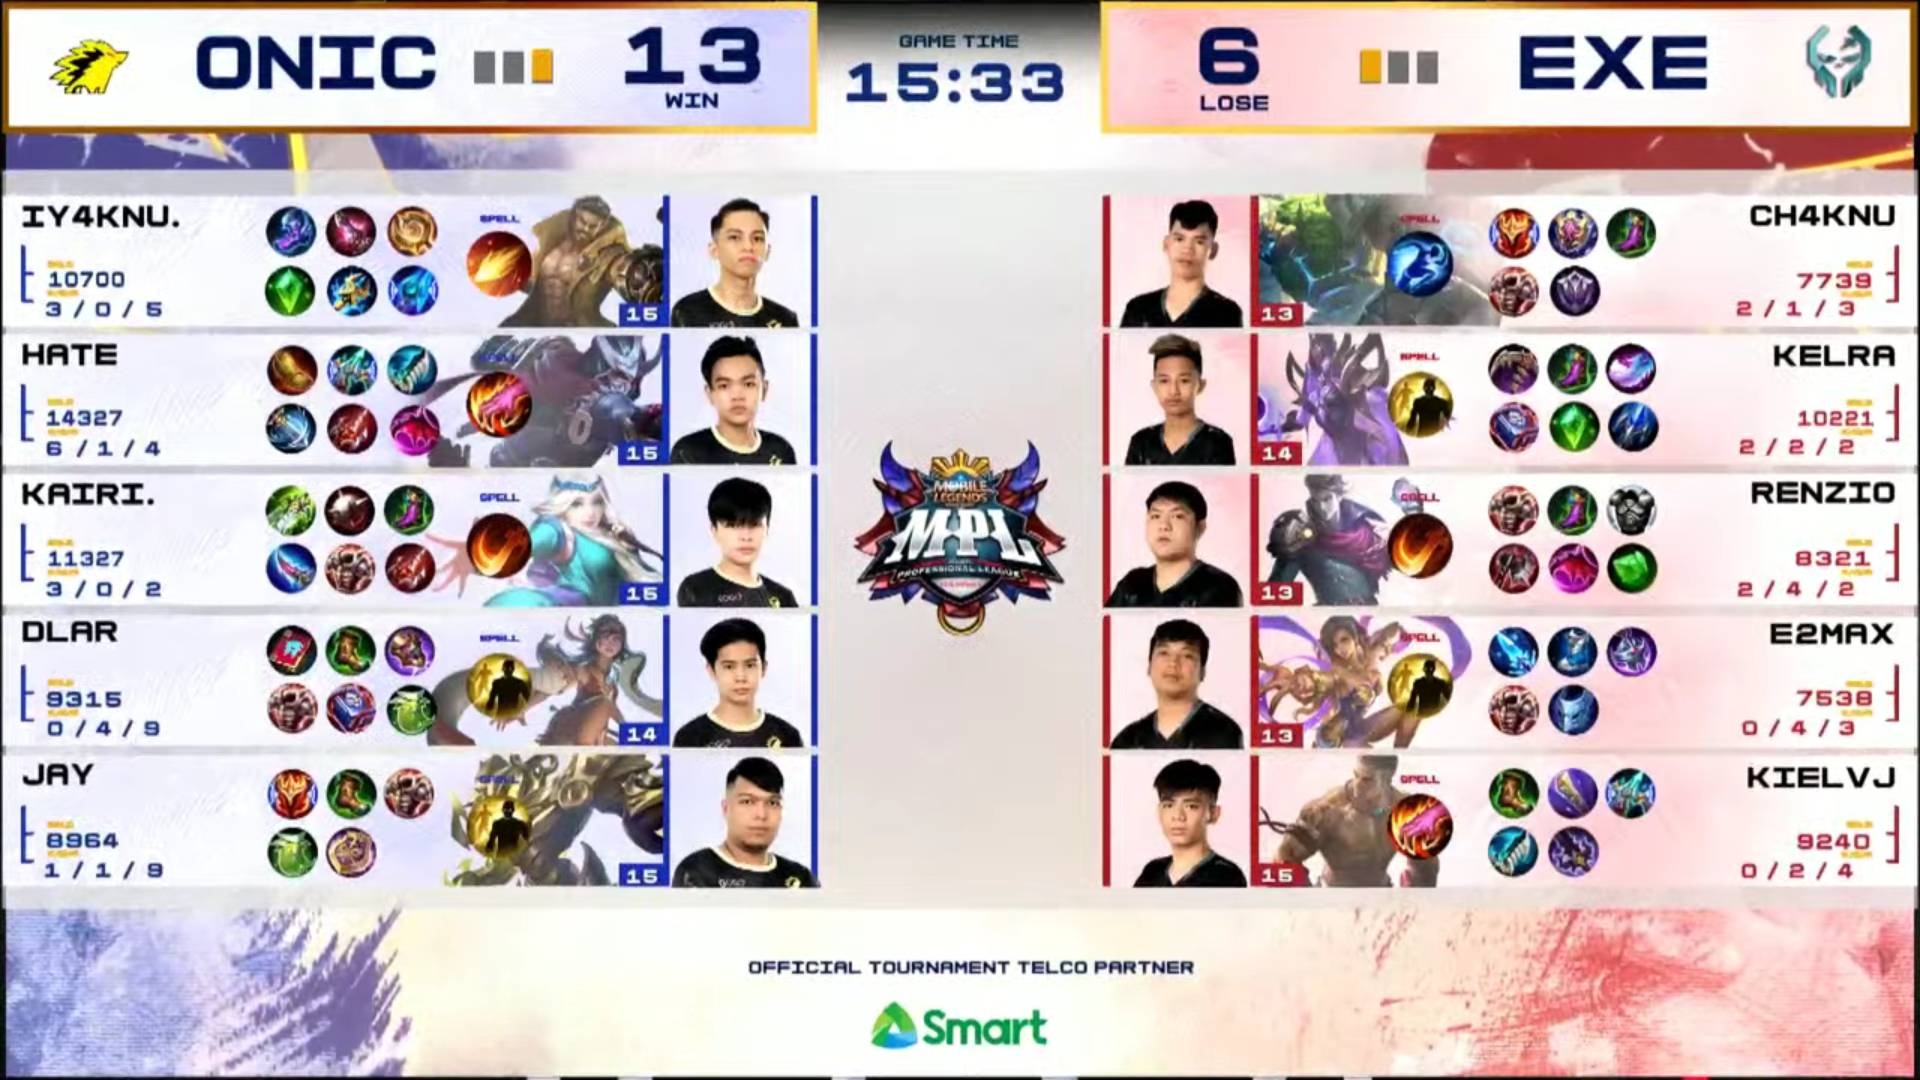 MPL-PH-Season-7-Execration-def-Onic-Game-2 Execration eliminates Hate, ONIC PH in MPL PH playoffs ESports Mobile Legends MPL-PH News  - philippine sports news